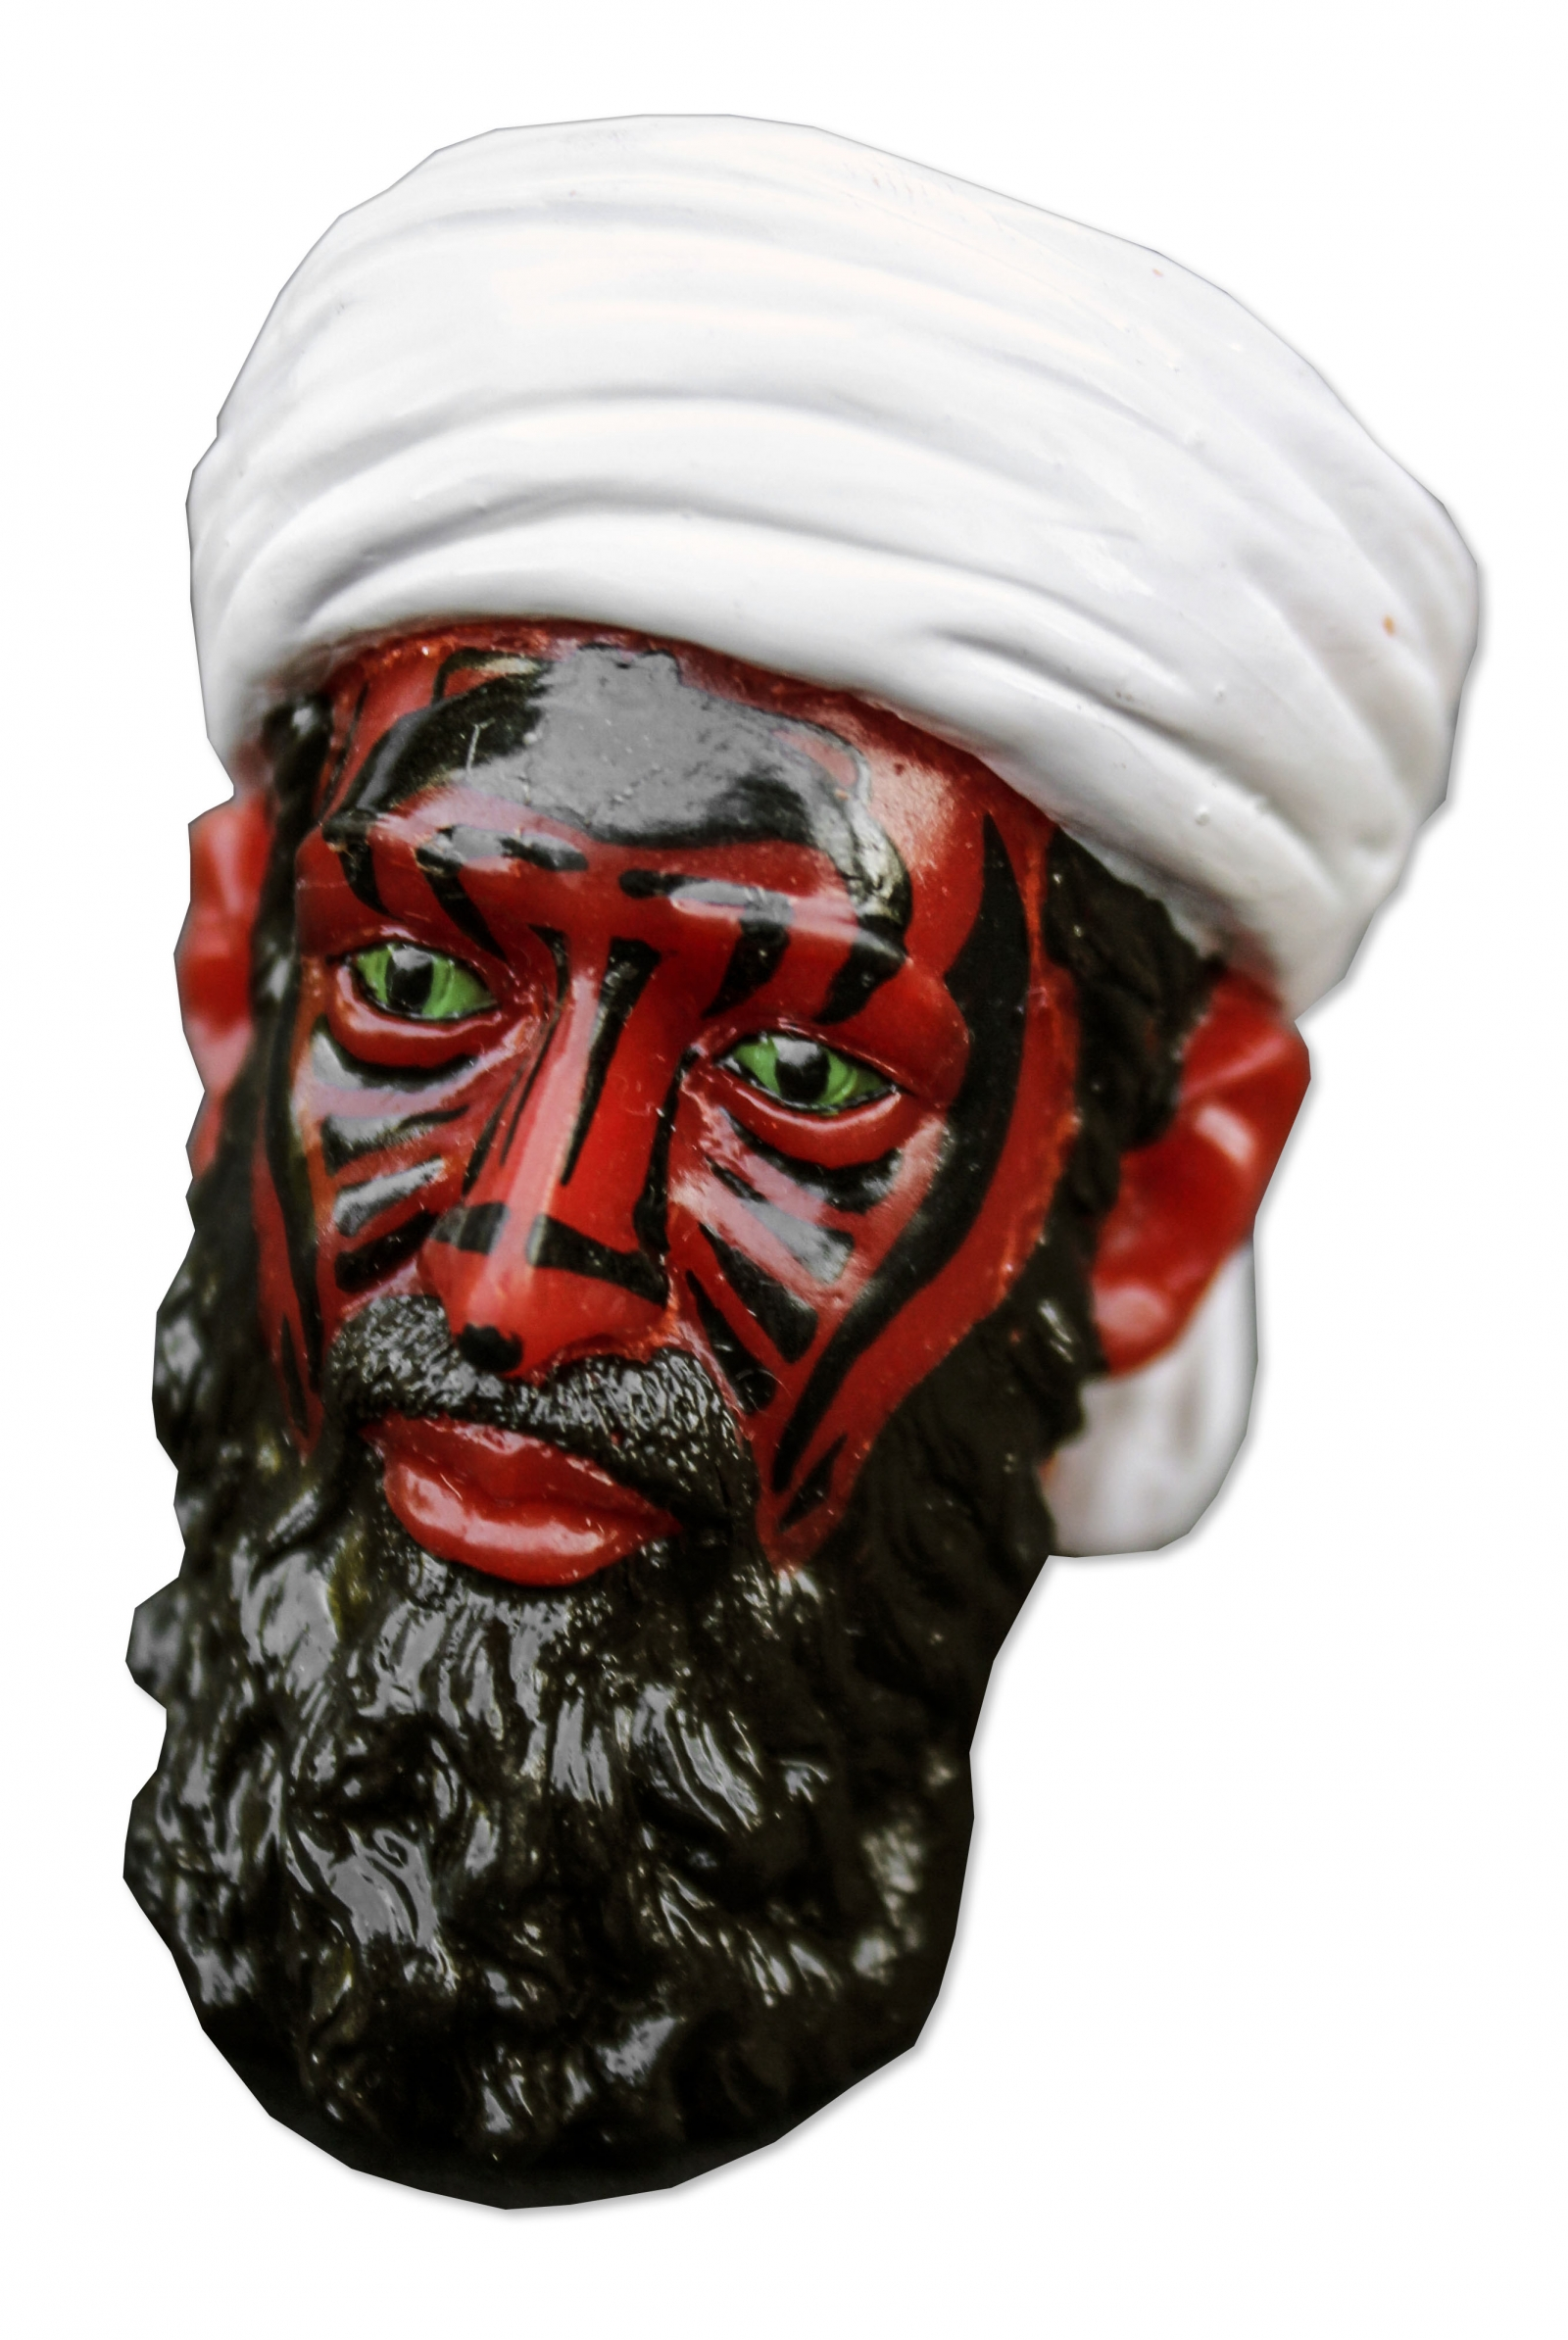 CIA-Made 'Scary' Osama Bin Laden Doll on Sale for £1,500